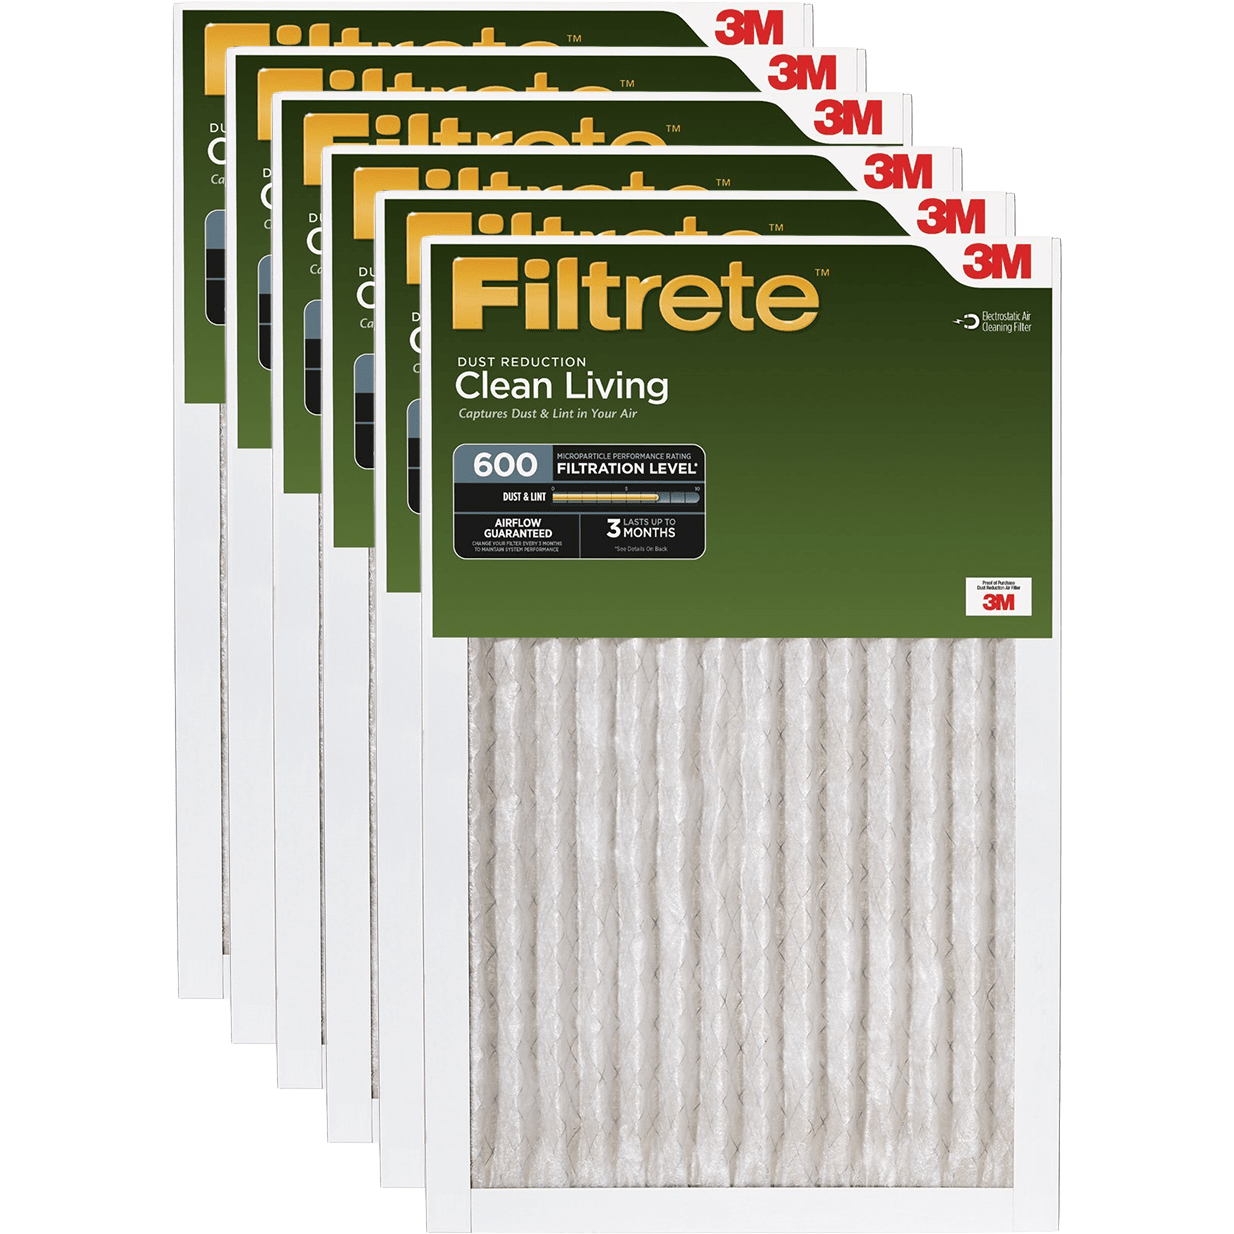 3M Filtrete Clean Living Dust Reduction MPR 600 Air Filters, 1-Inch 6-Pack fi5329